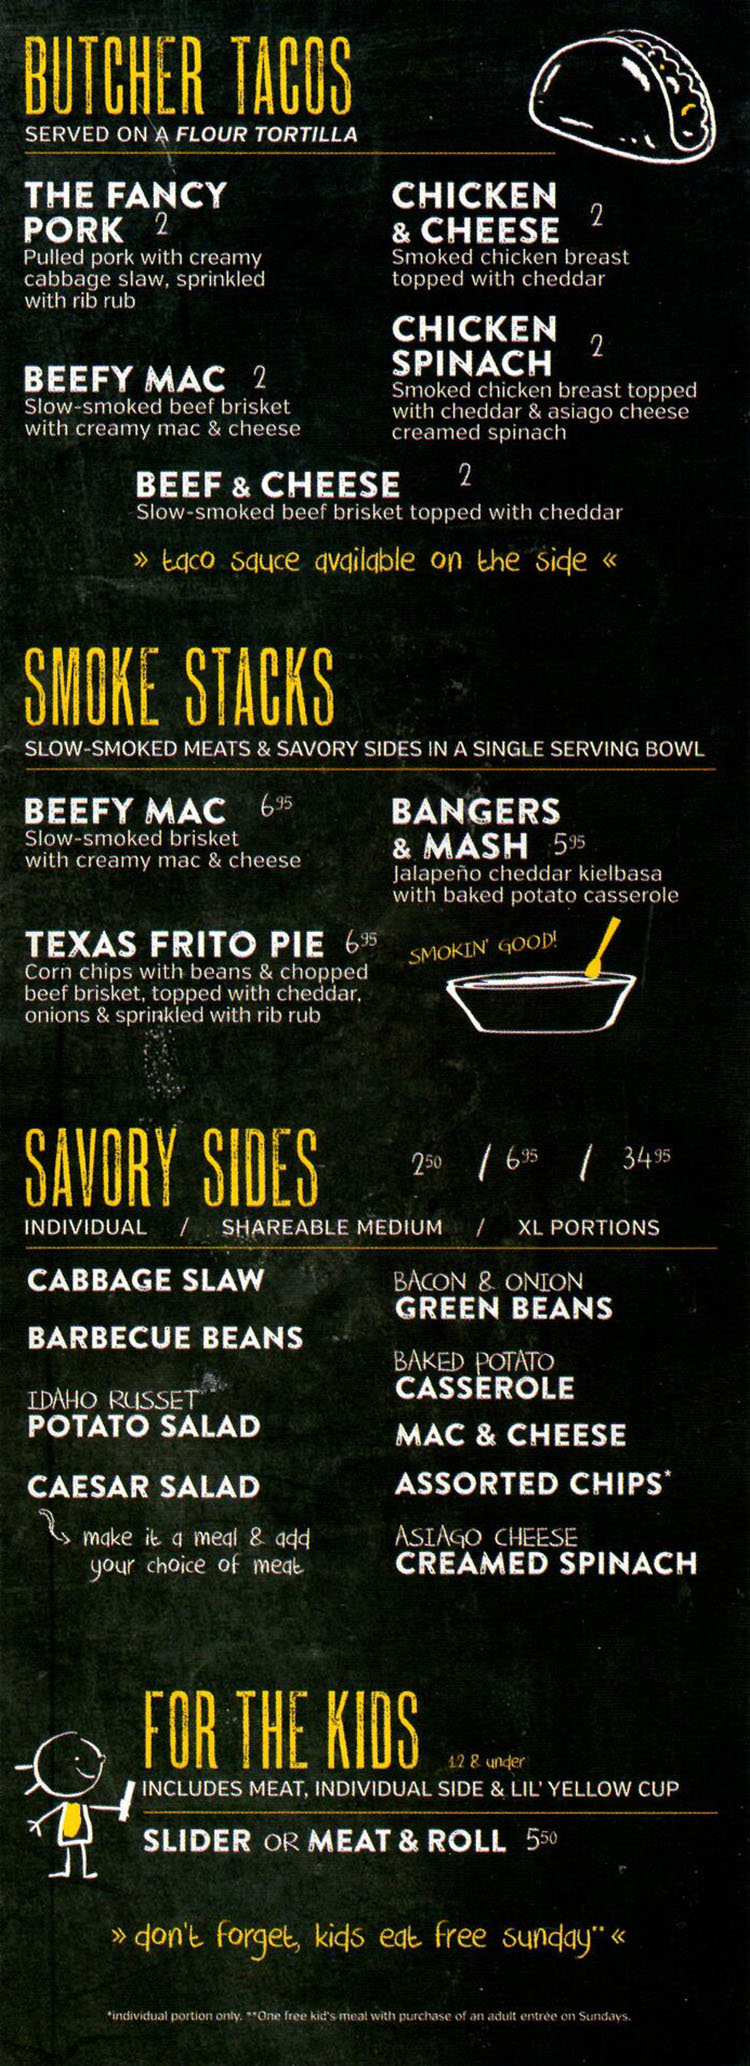 Dickey's Barbecue Pit SLC menu - tacos, bowls, sides